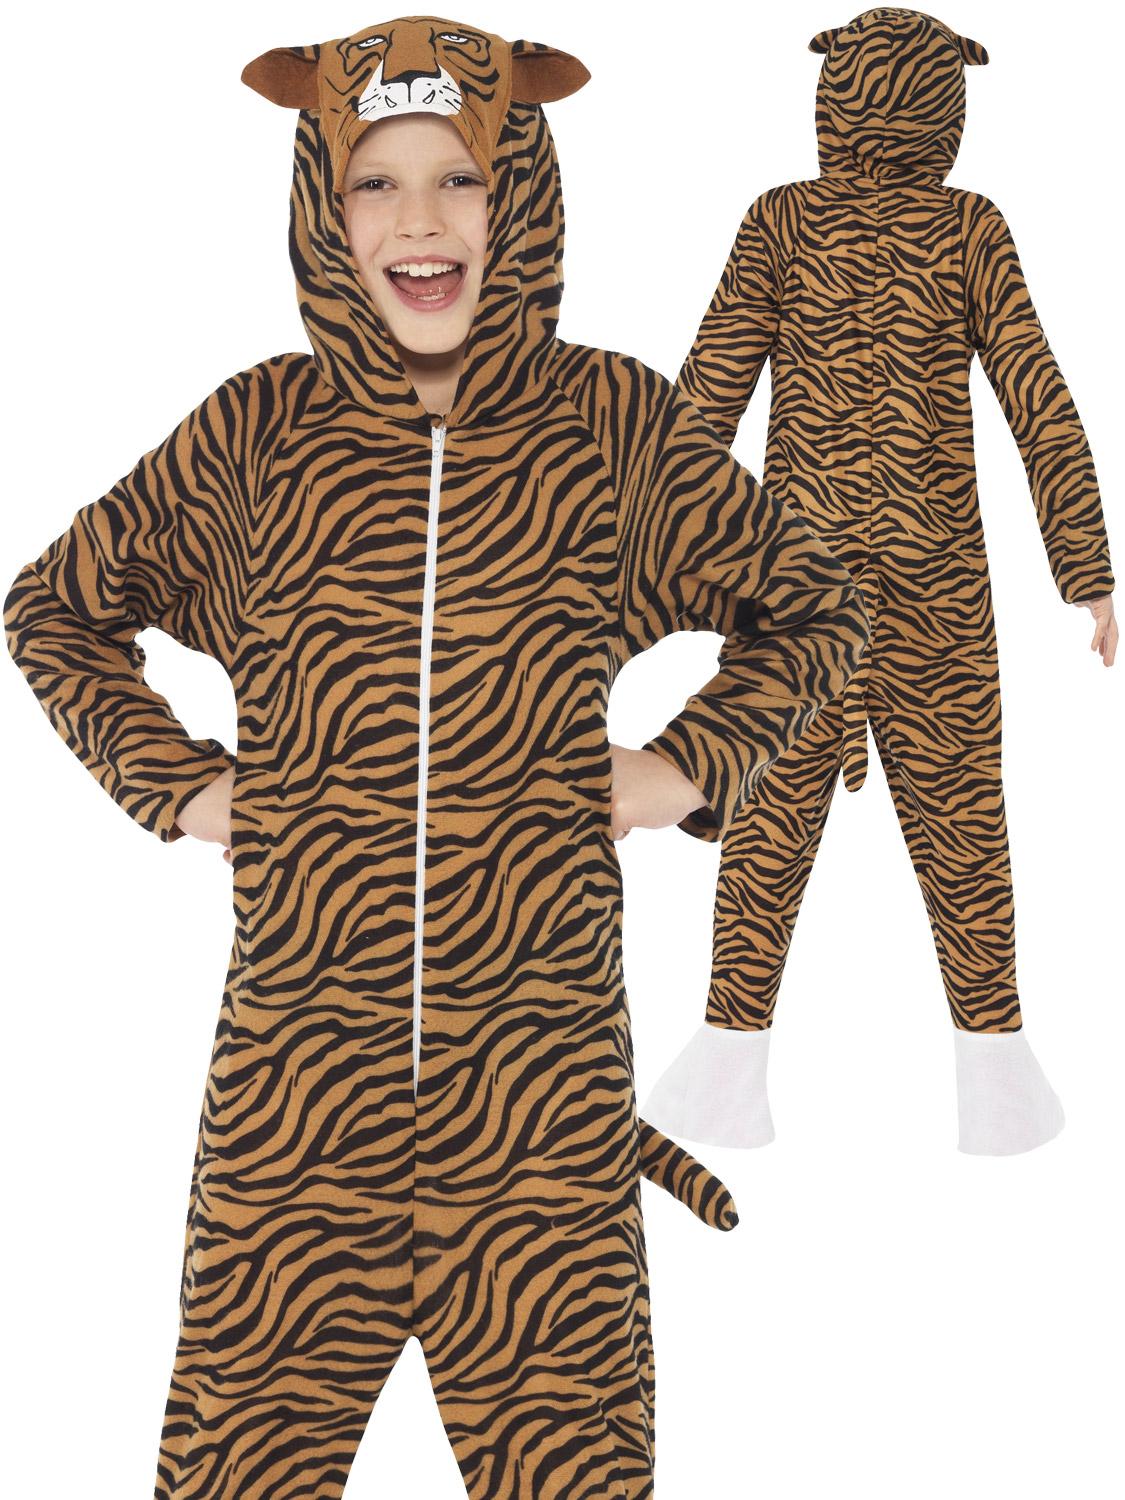 CK1016 Tiger Costume Boys Girls Jumpsuit Jungle Zoo Animal Kids Book Week Outfit